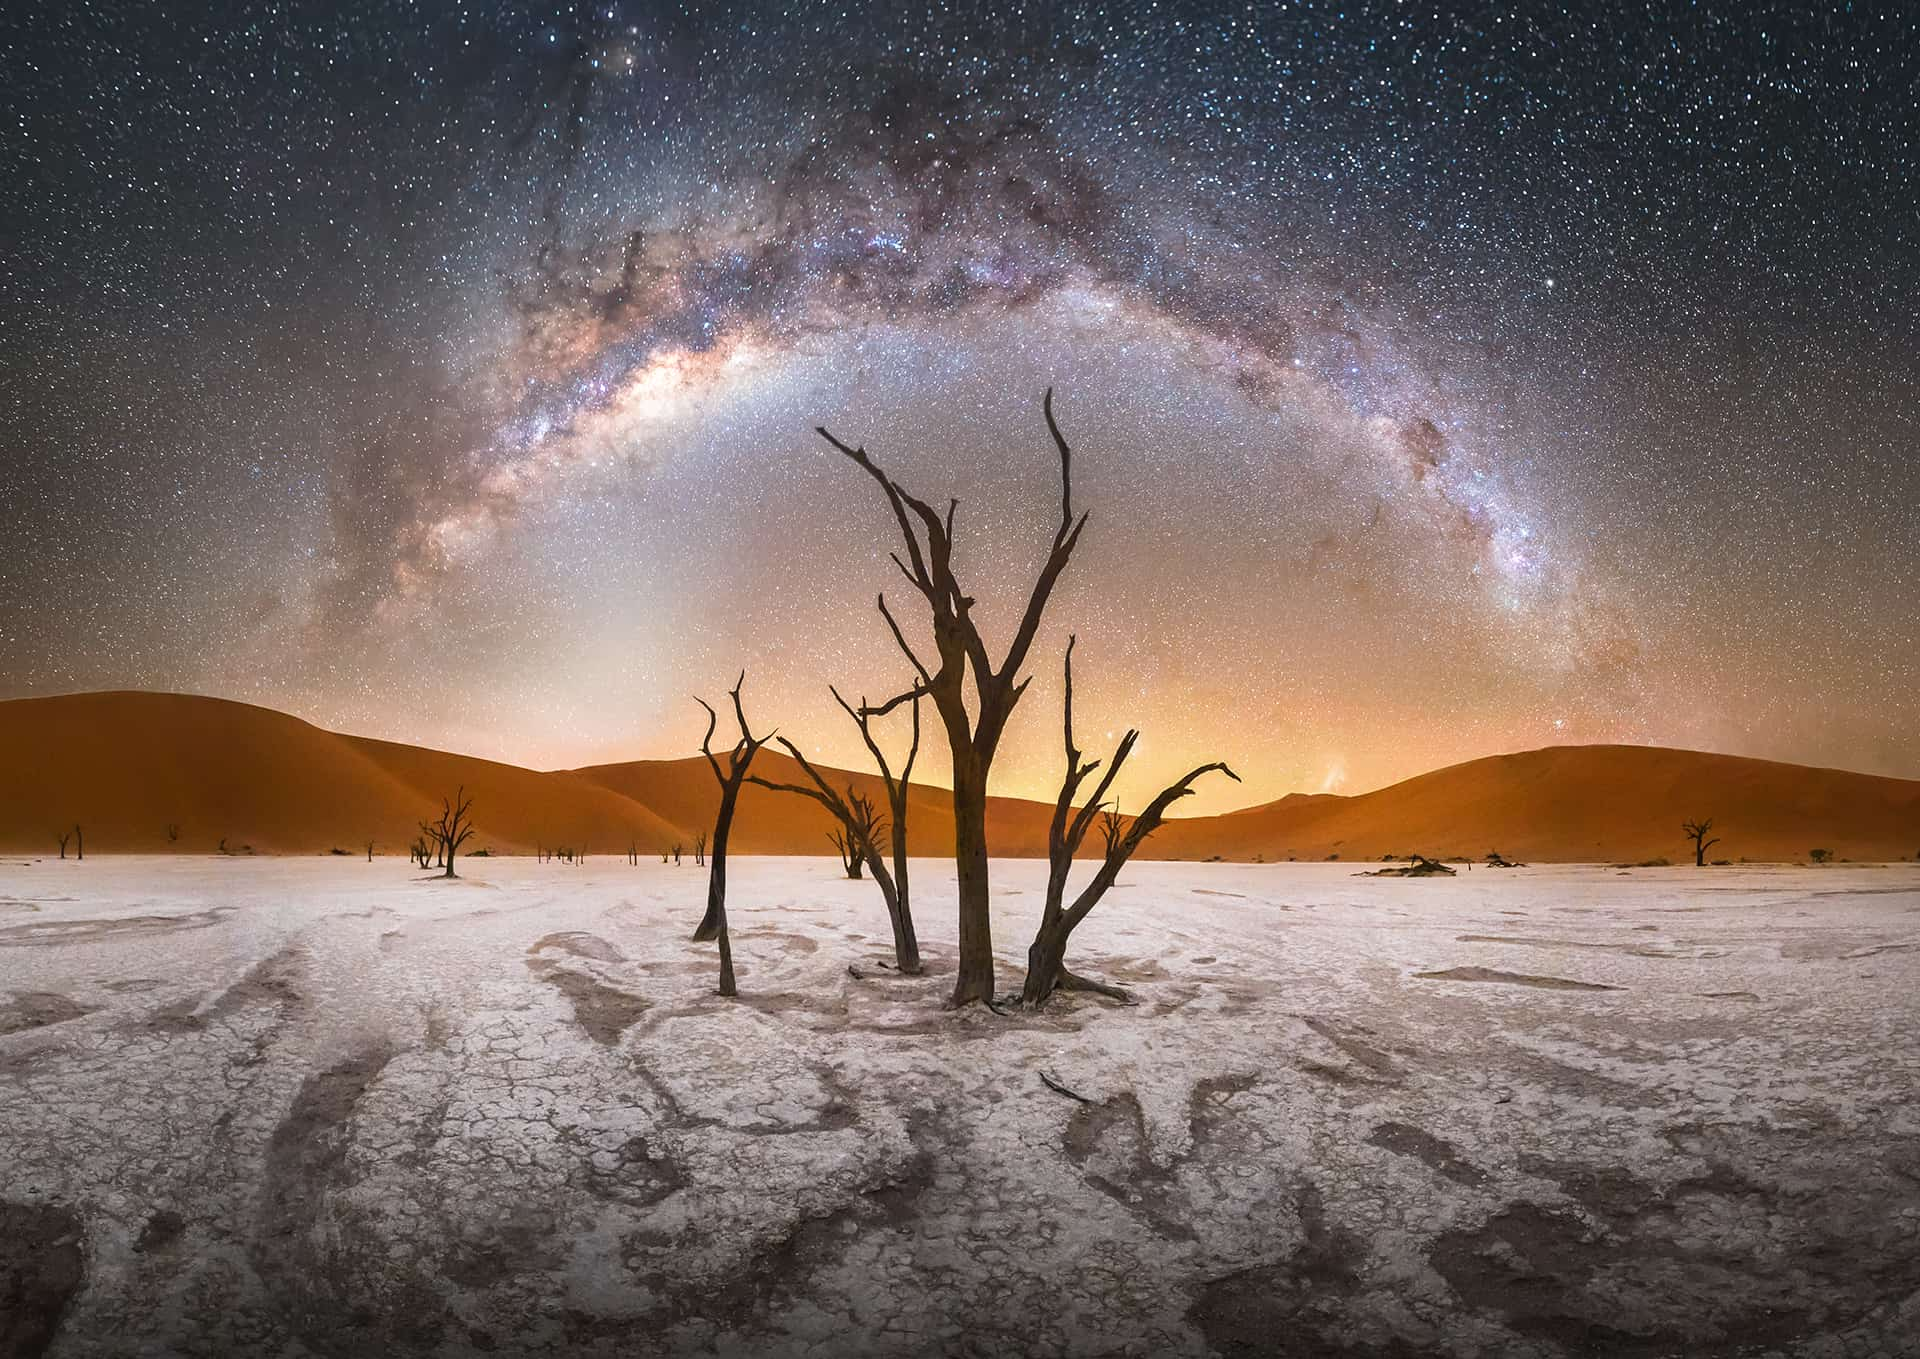 Best places to see the Milky Way in Africa